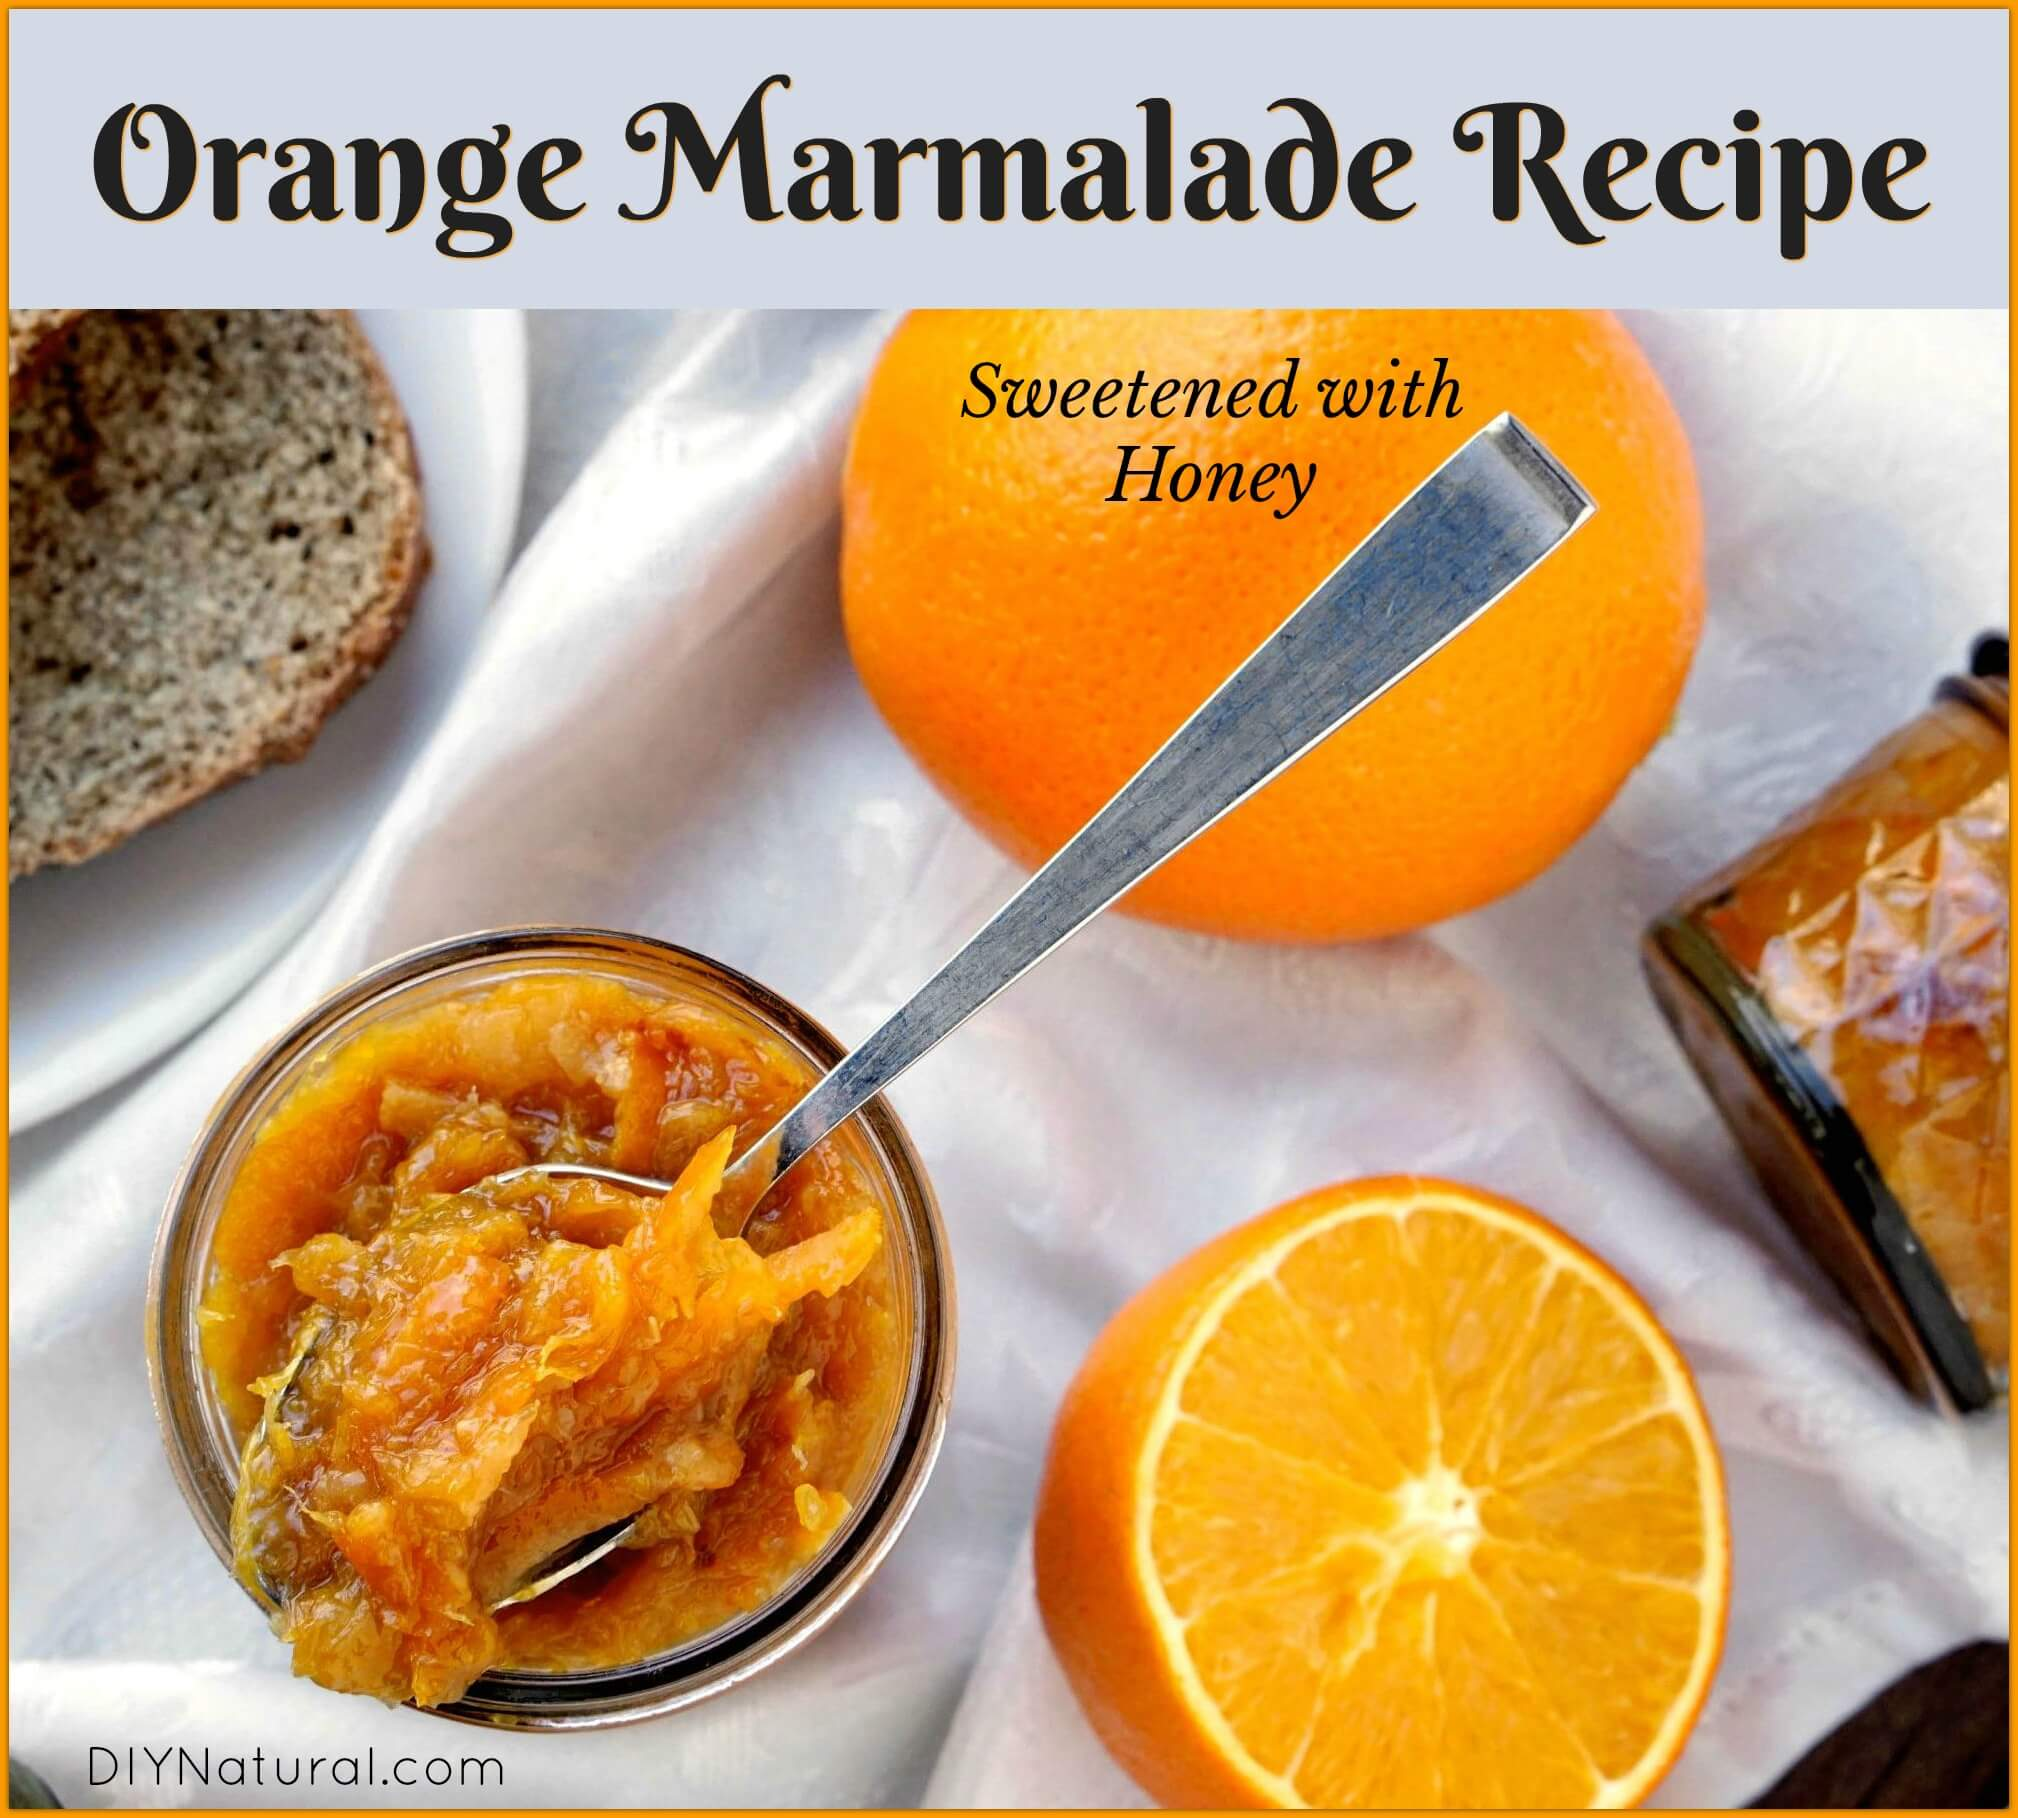 Orange Marmalade Recipe: A Delicious